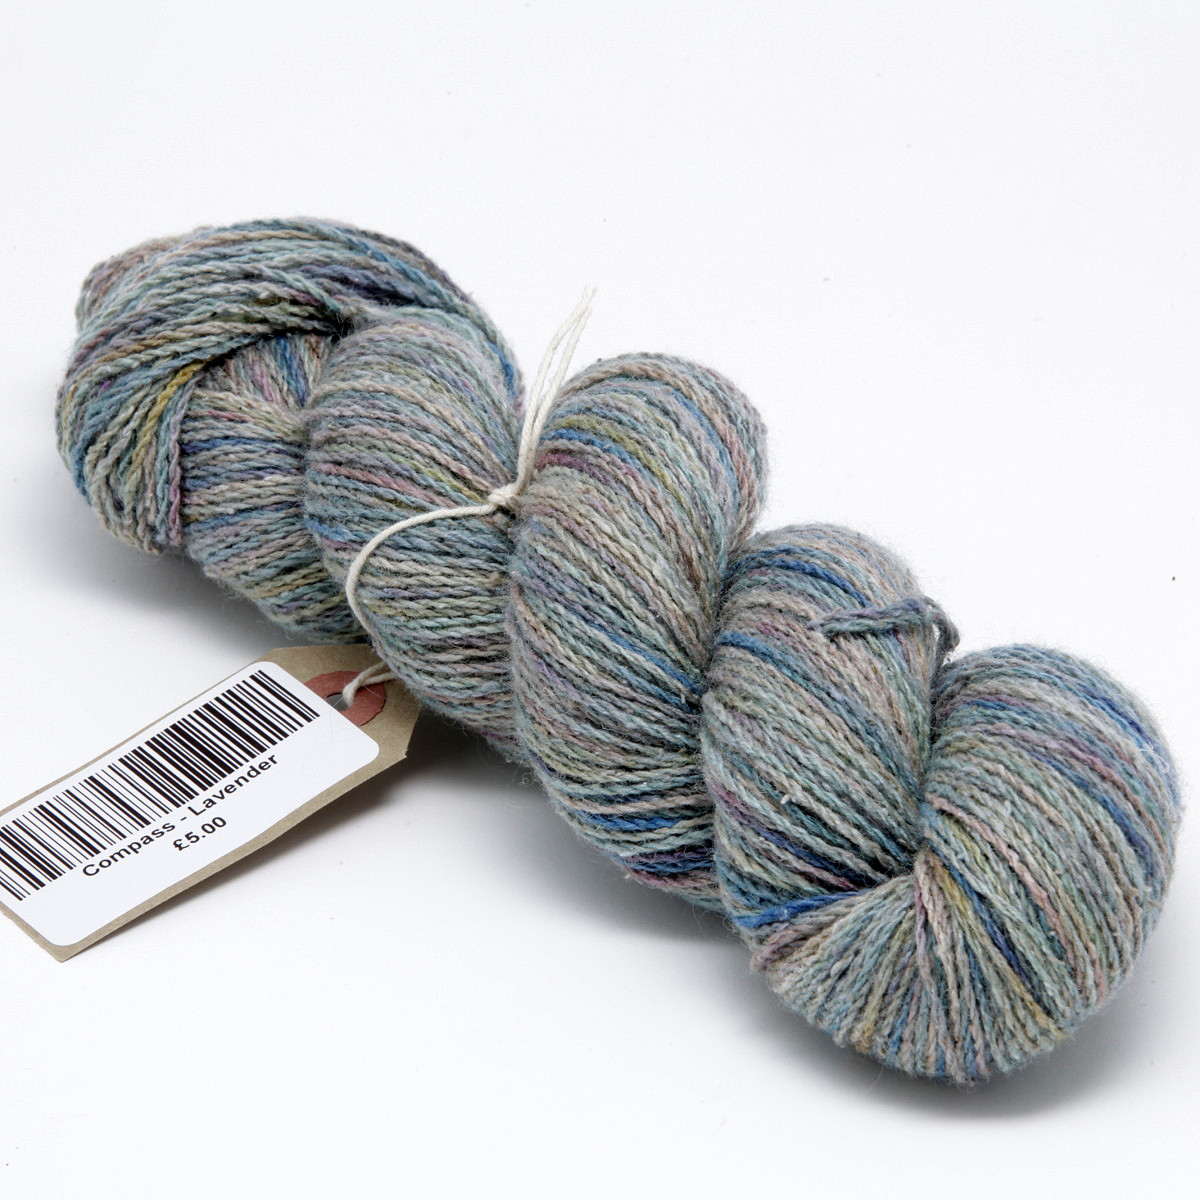 Elegant Pass Lavender the Yarn Gallery Yarn Companies Of Great 45 Images Yarn Companies